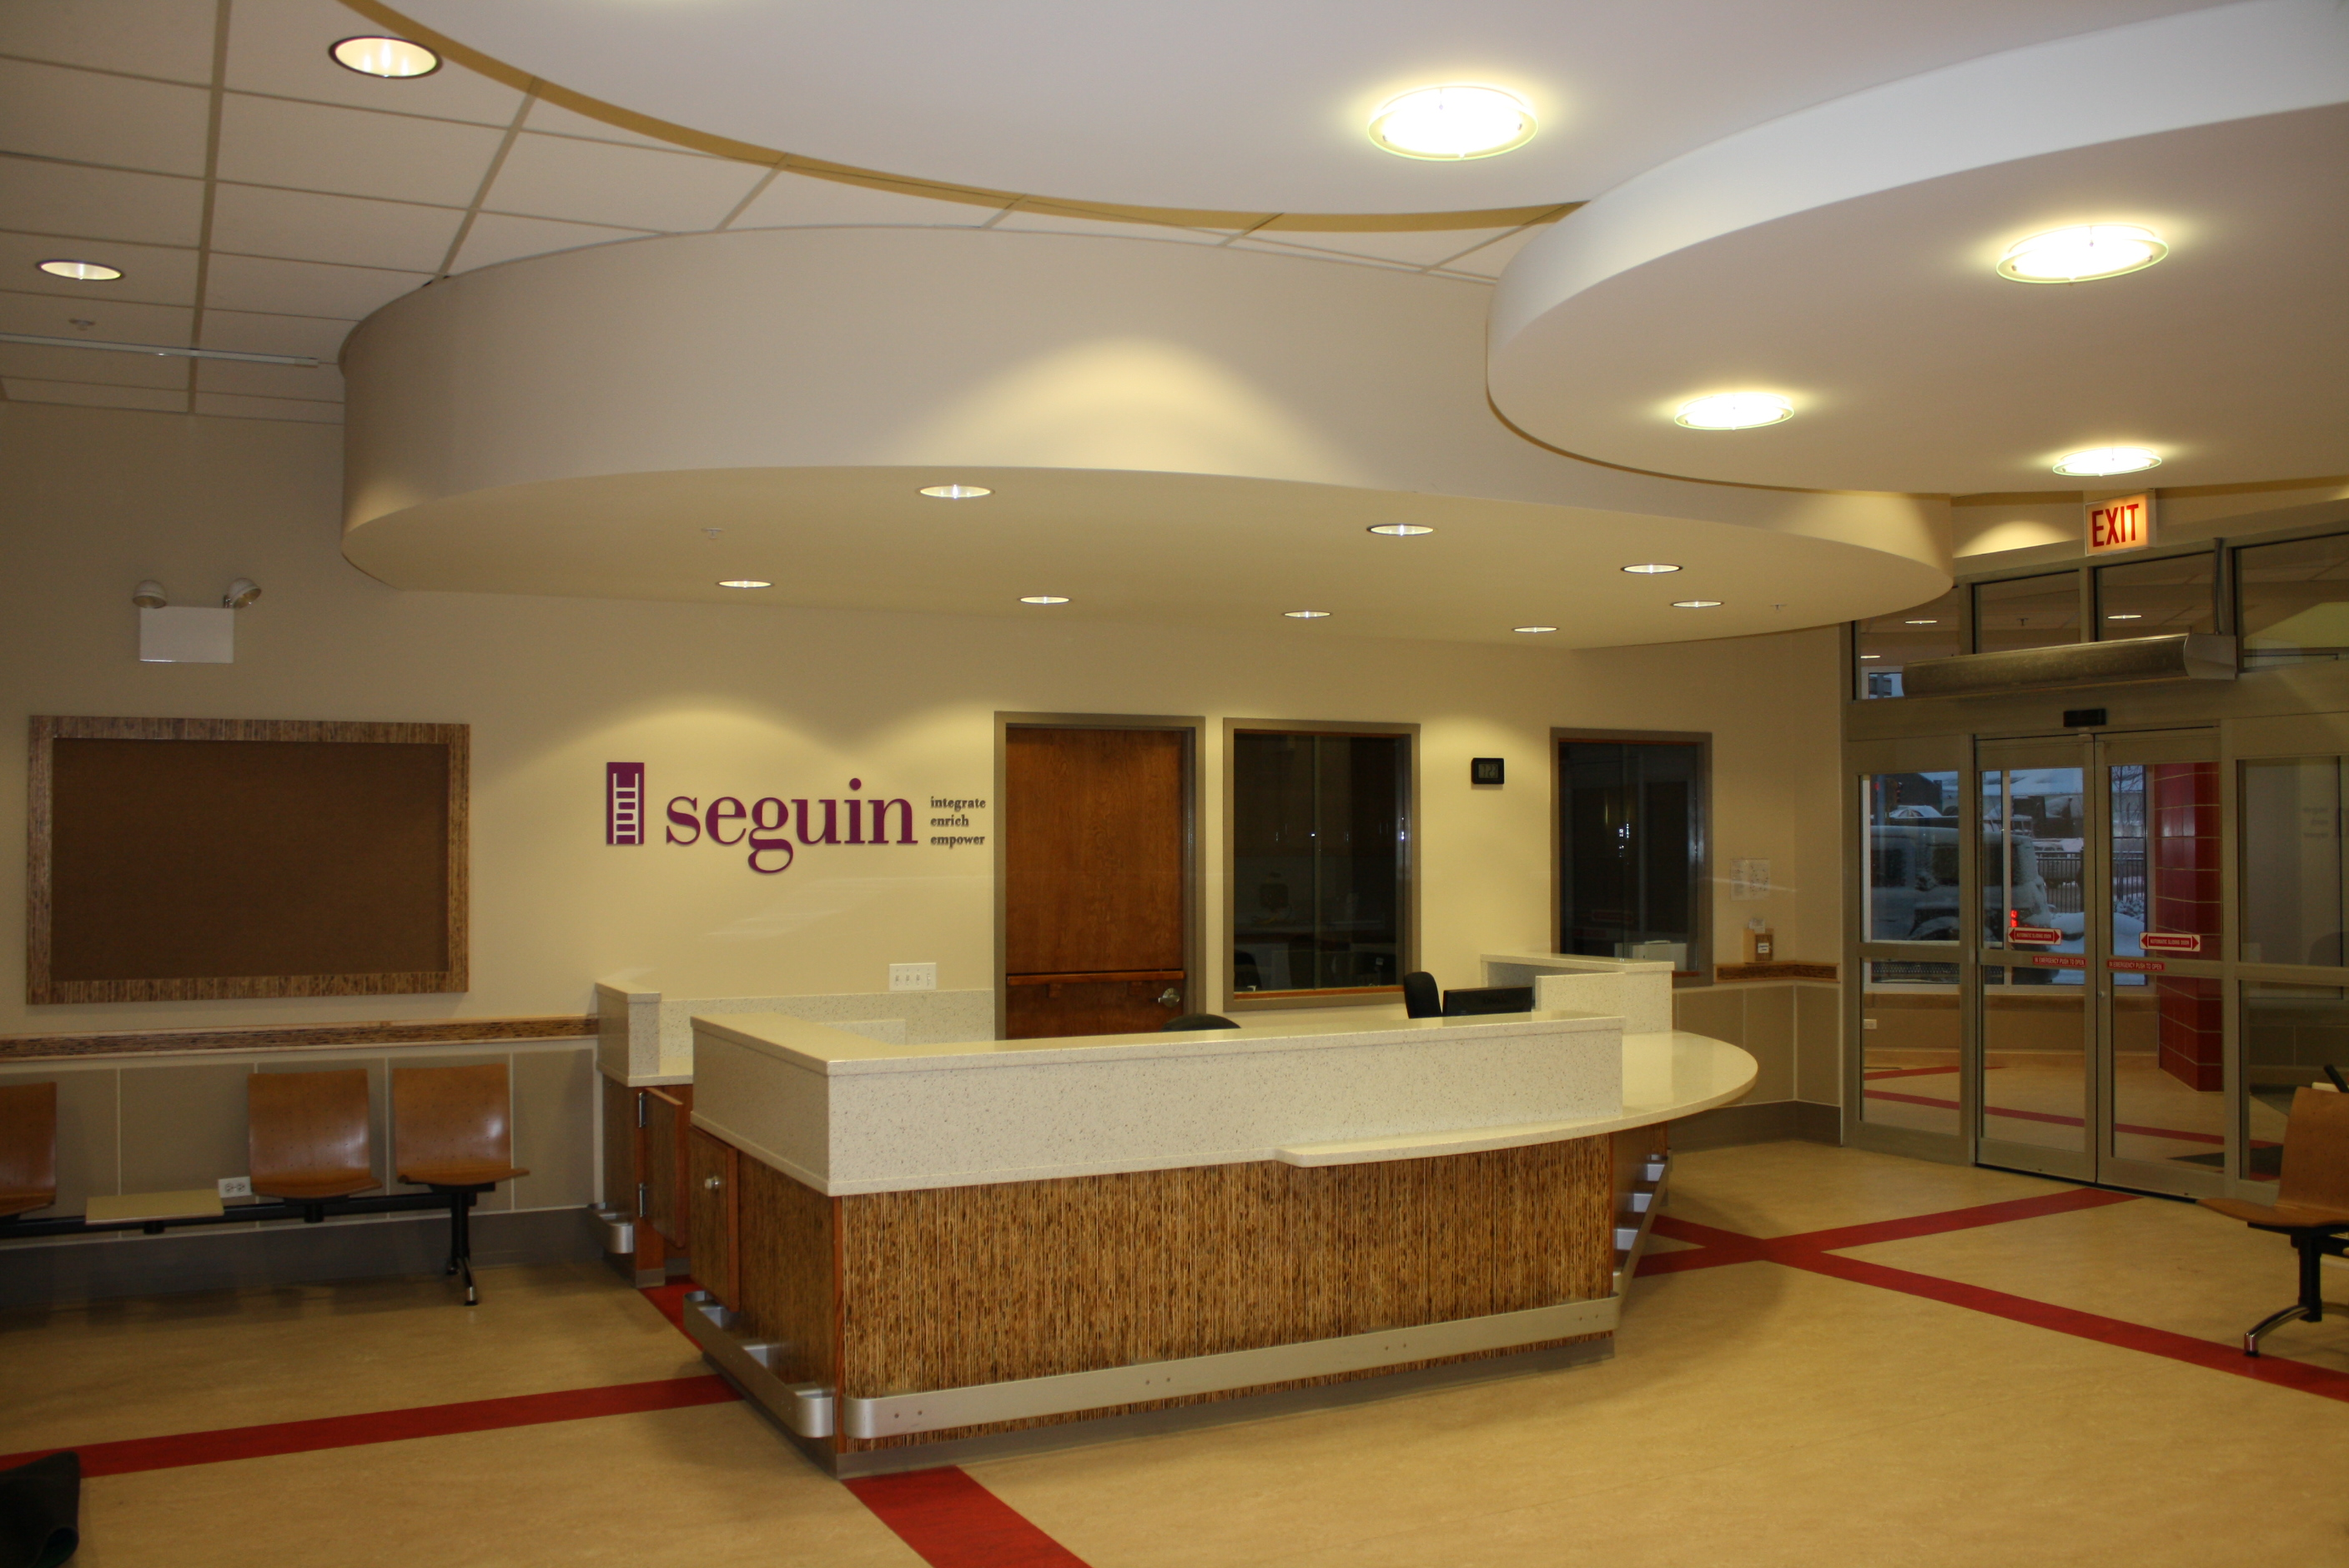 Seguin Services Carr Center